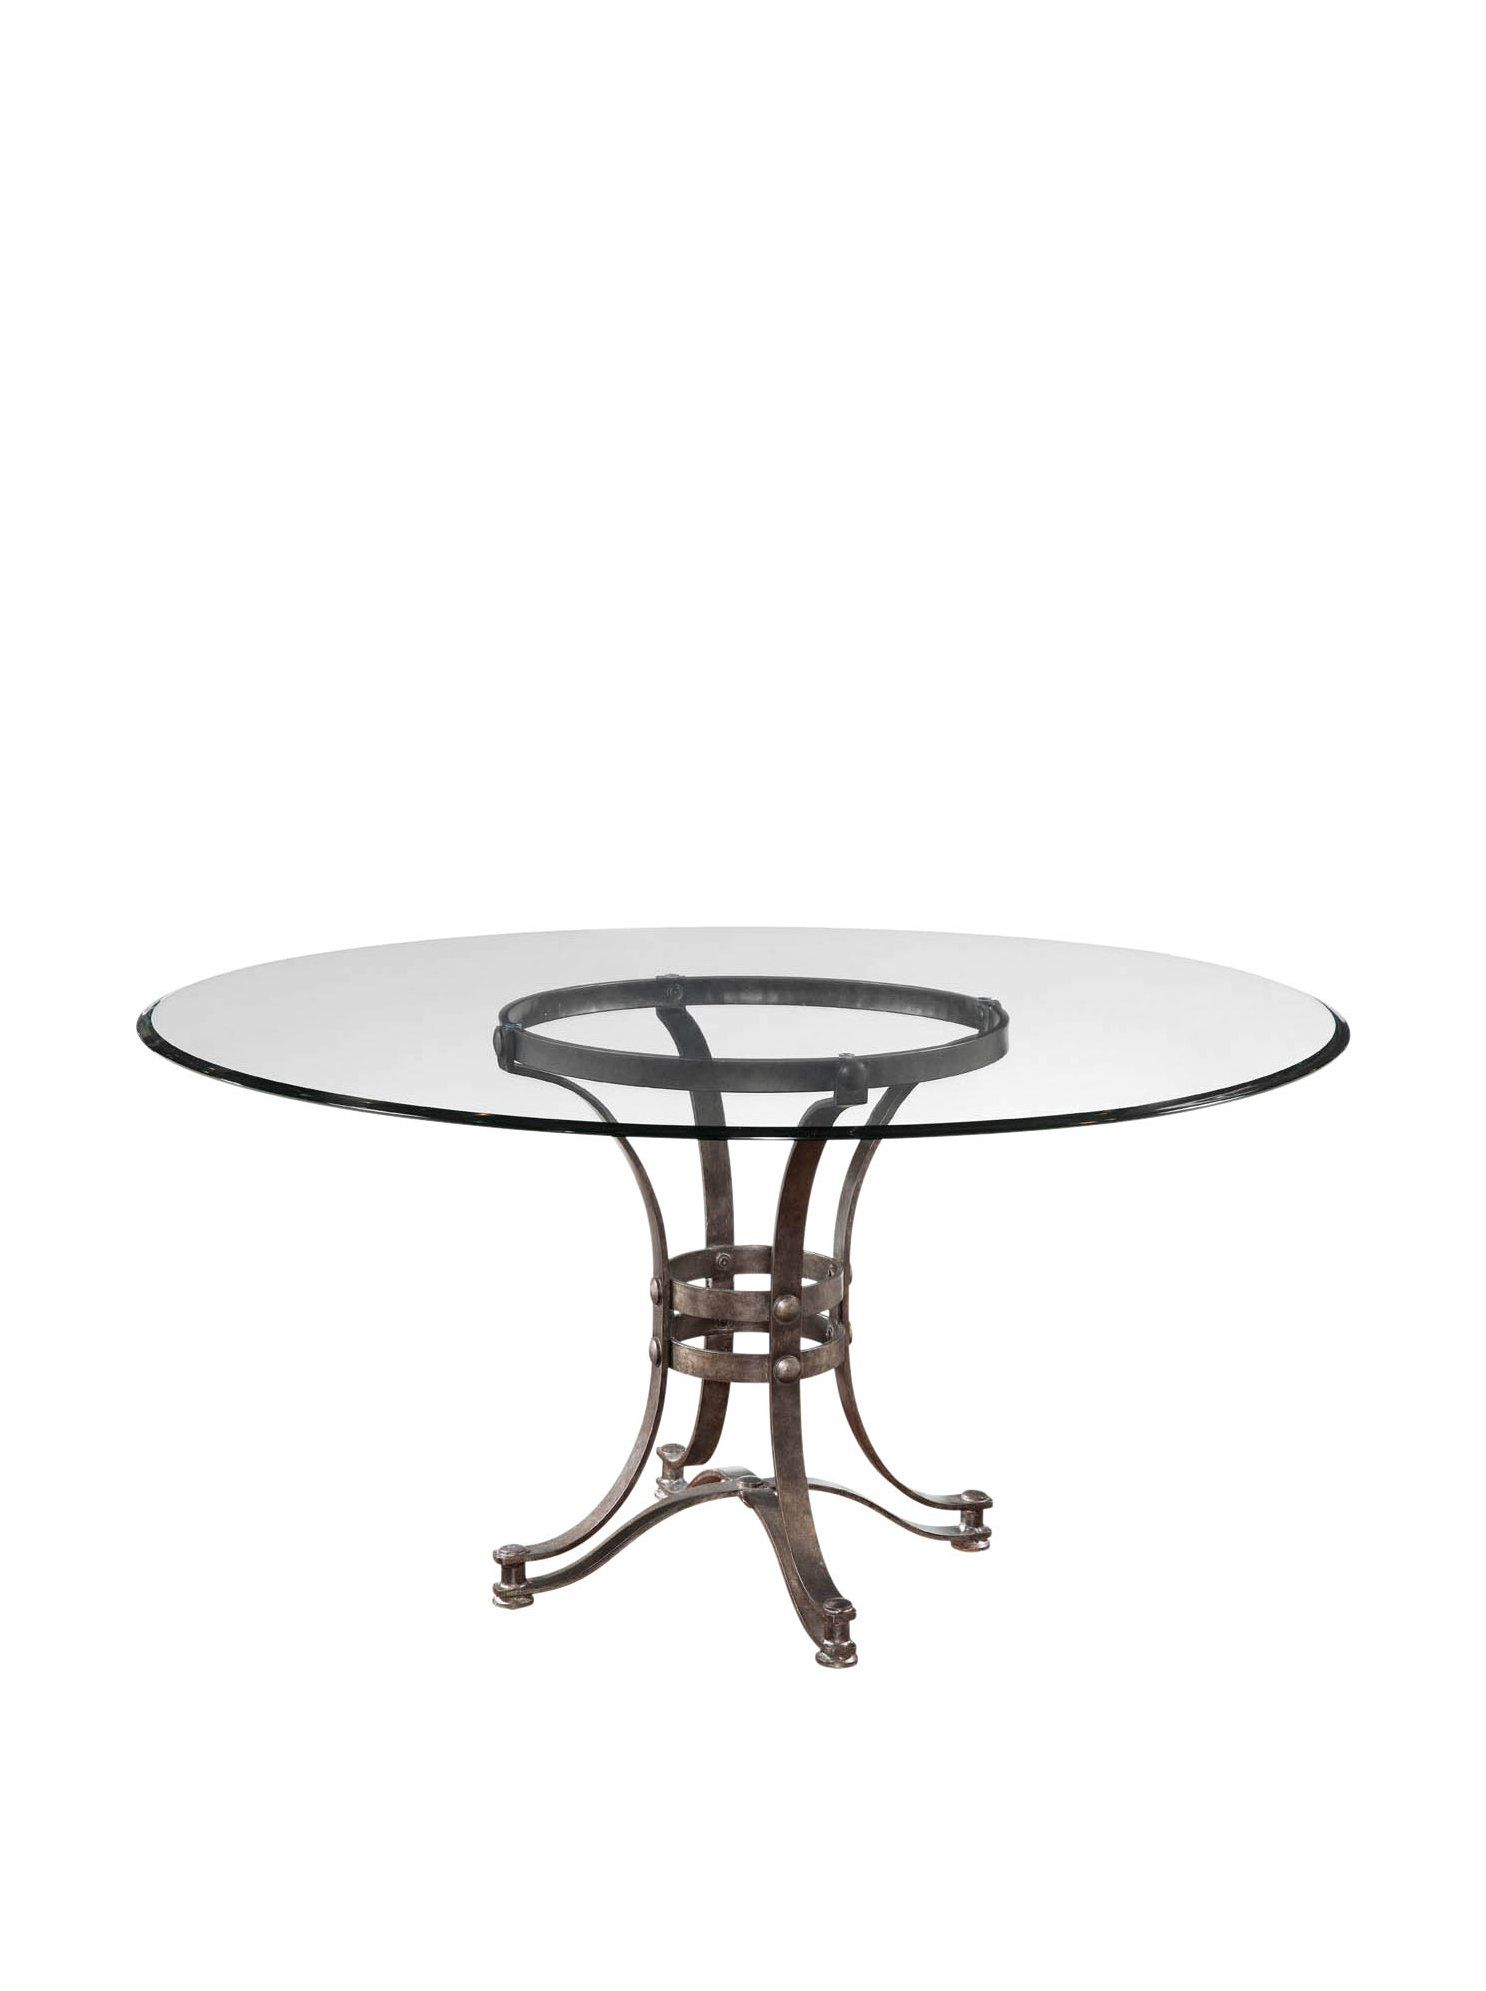 Bassett mirror company carnaby round cocktail leaf new home s - Bassett Mirror Company Tempe Dining Table At Myhabit